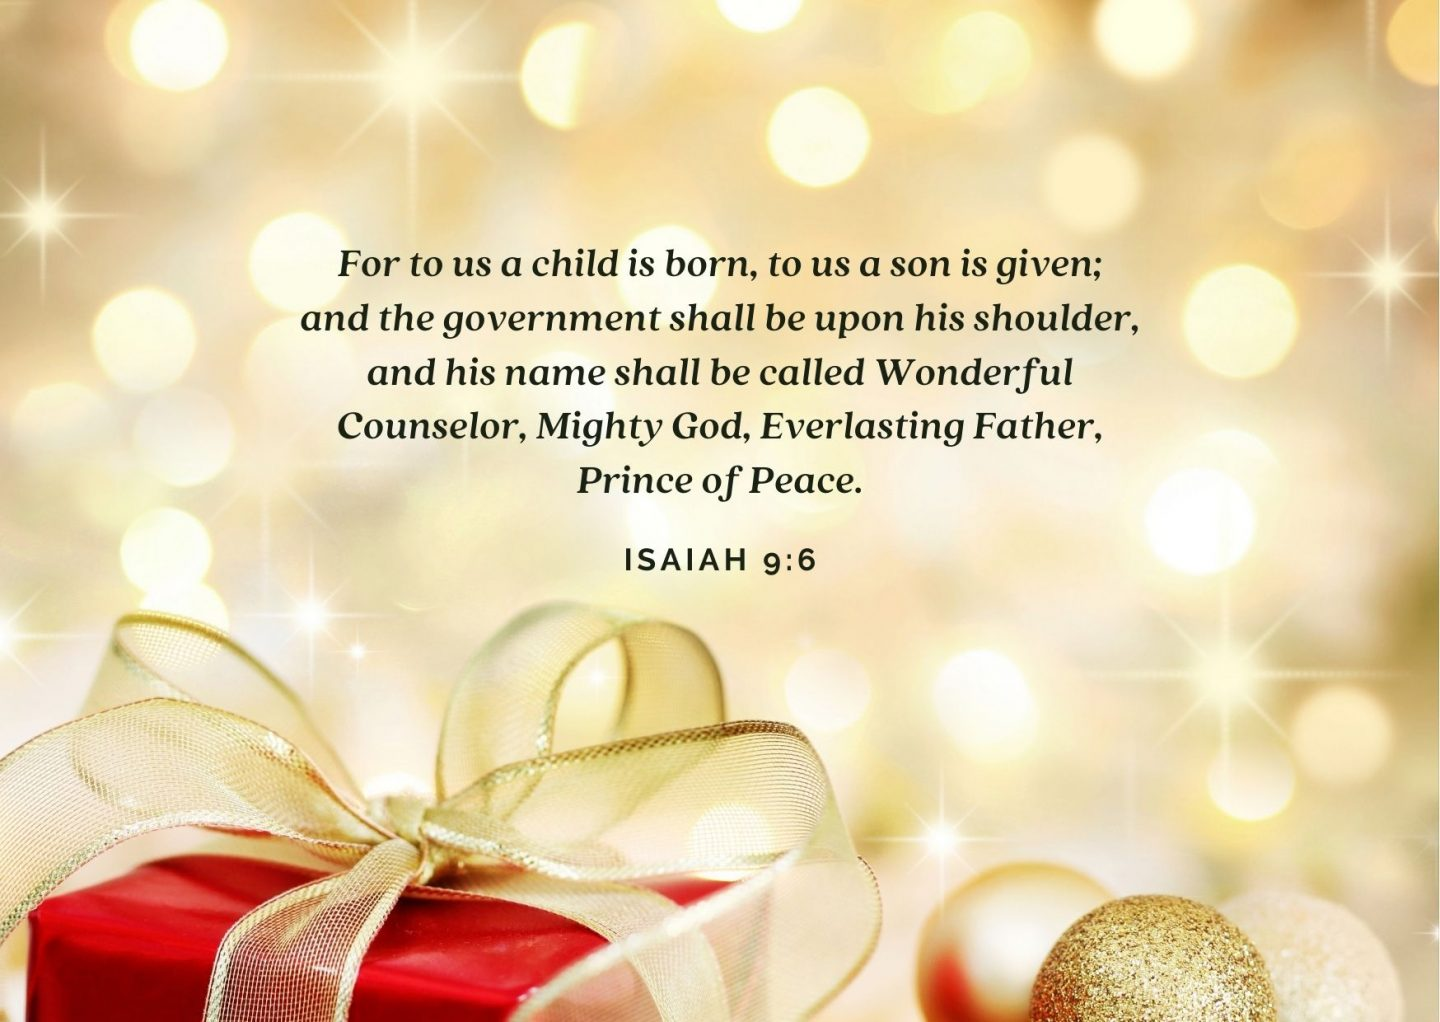 For to us a child is born, to us a son is given; and the government shall be upon his shoulder, and his name shall be called Wonderful Counselor, Mighty God, Everlasting Father, Prince of Peace. Isaiah 9:6